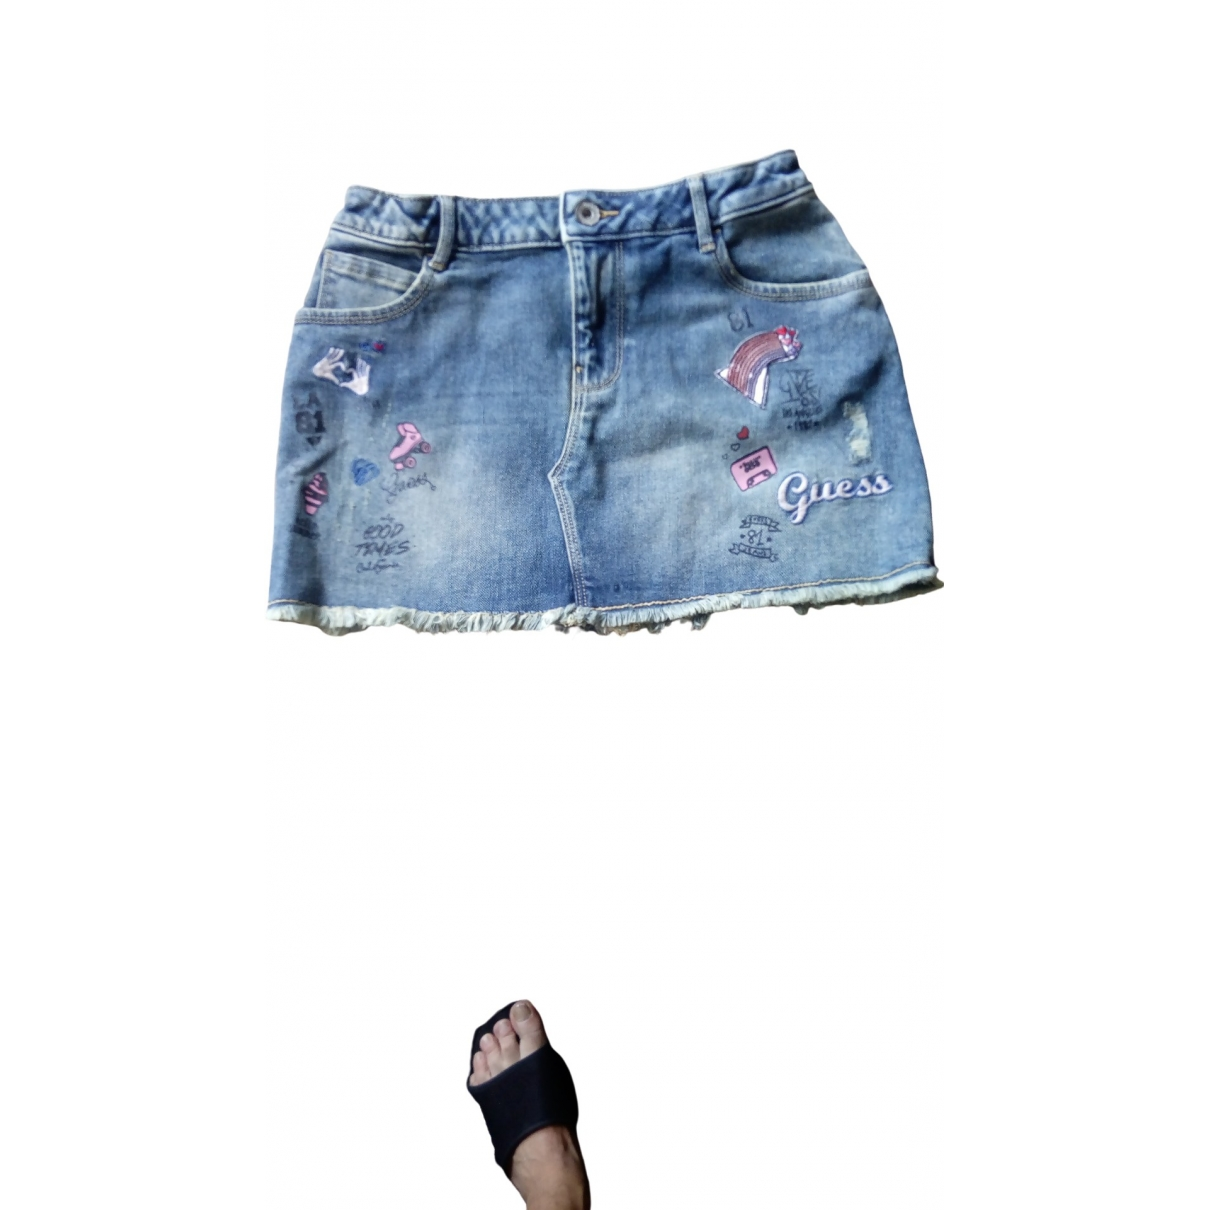 Guess \N Blue Denim - Jeans skirt for Kids 12 years - XS FR